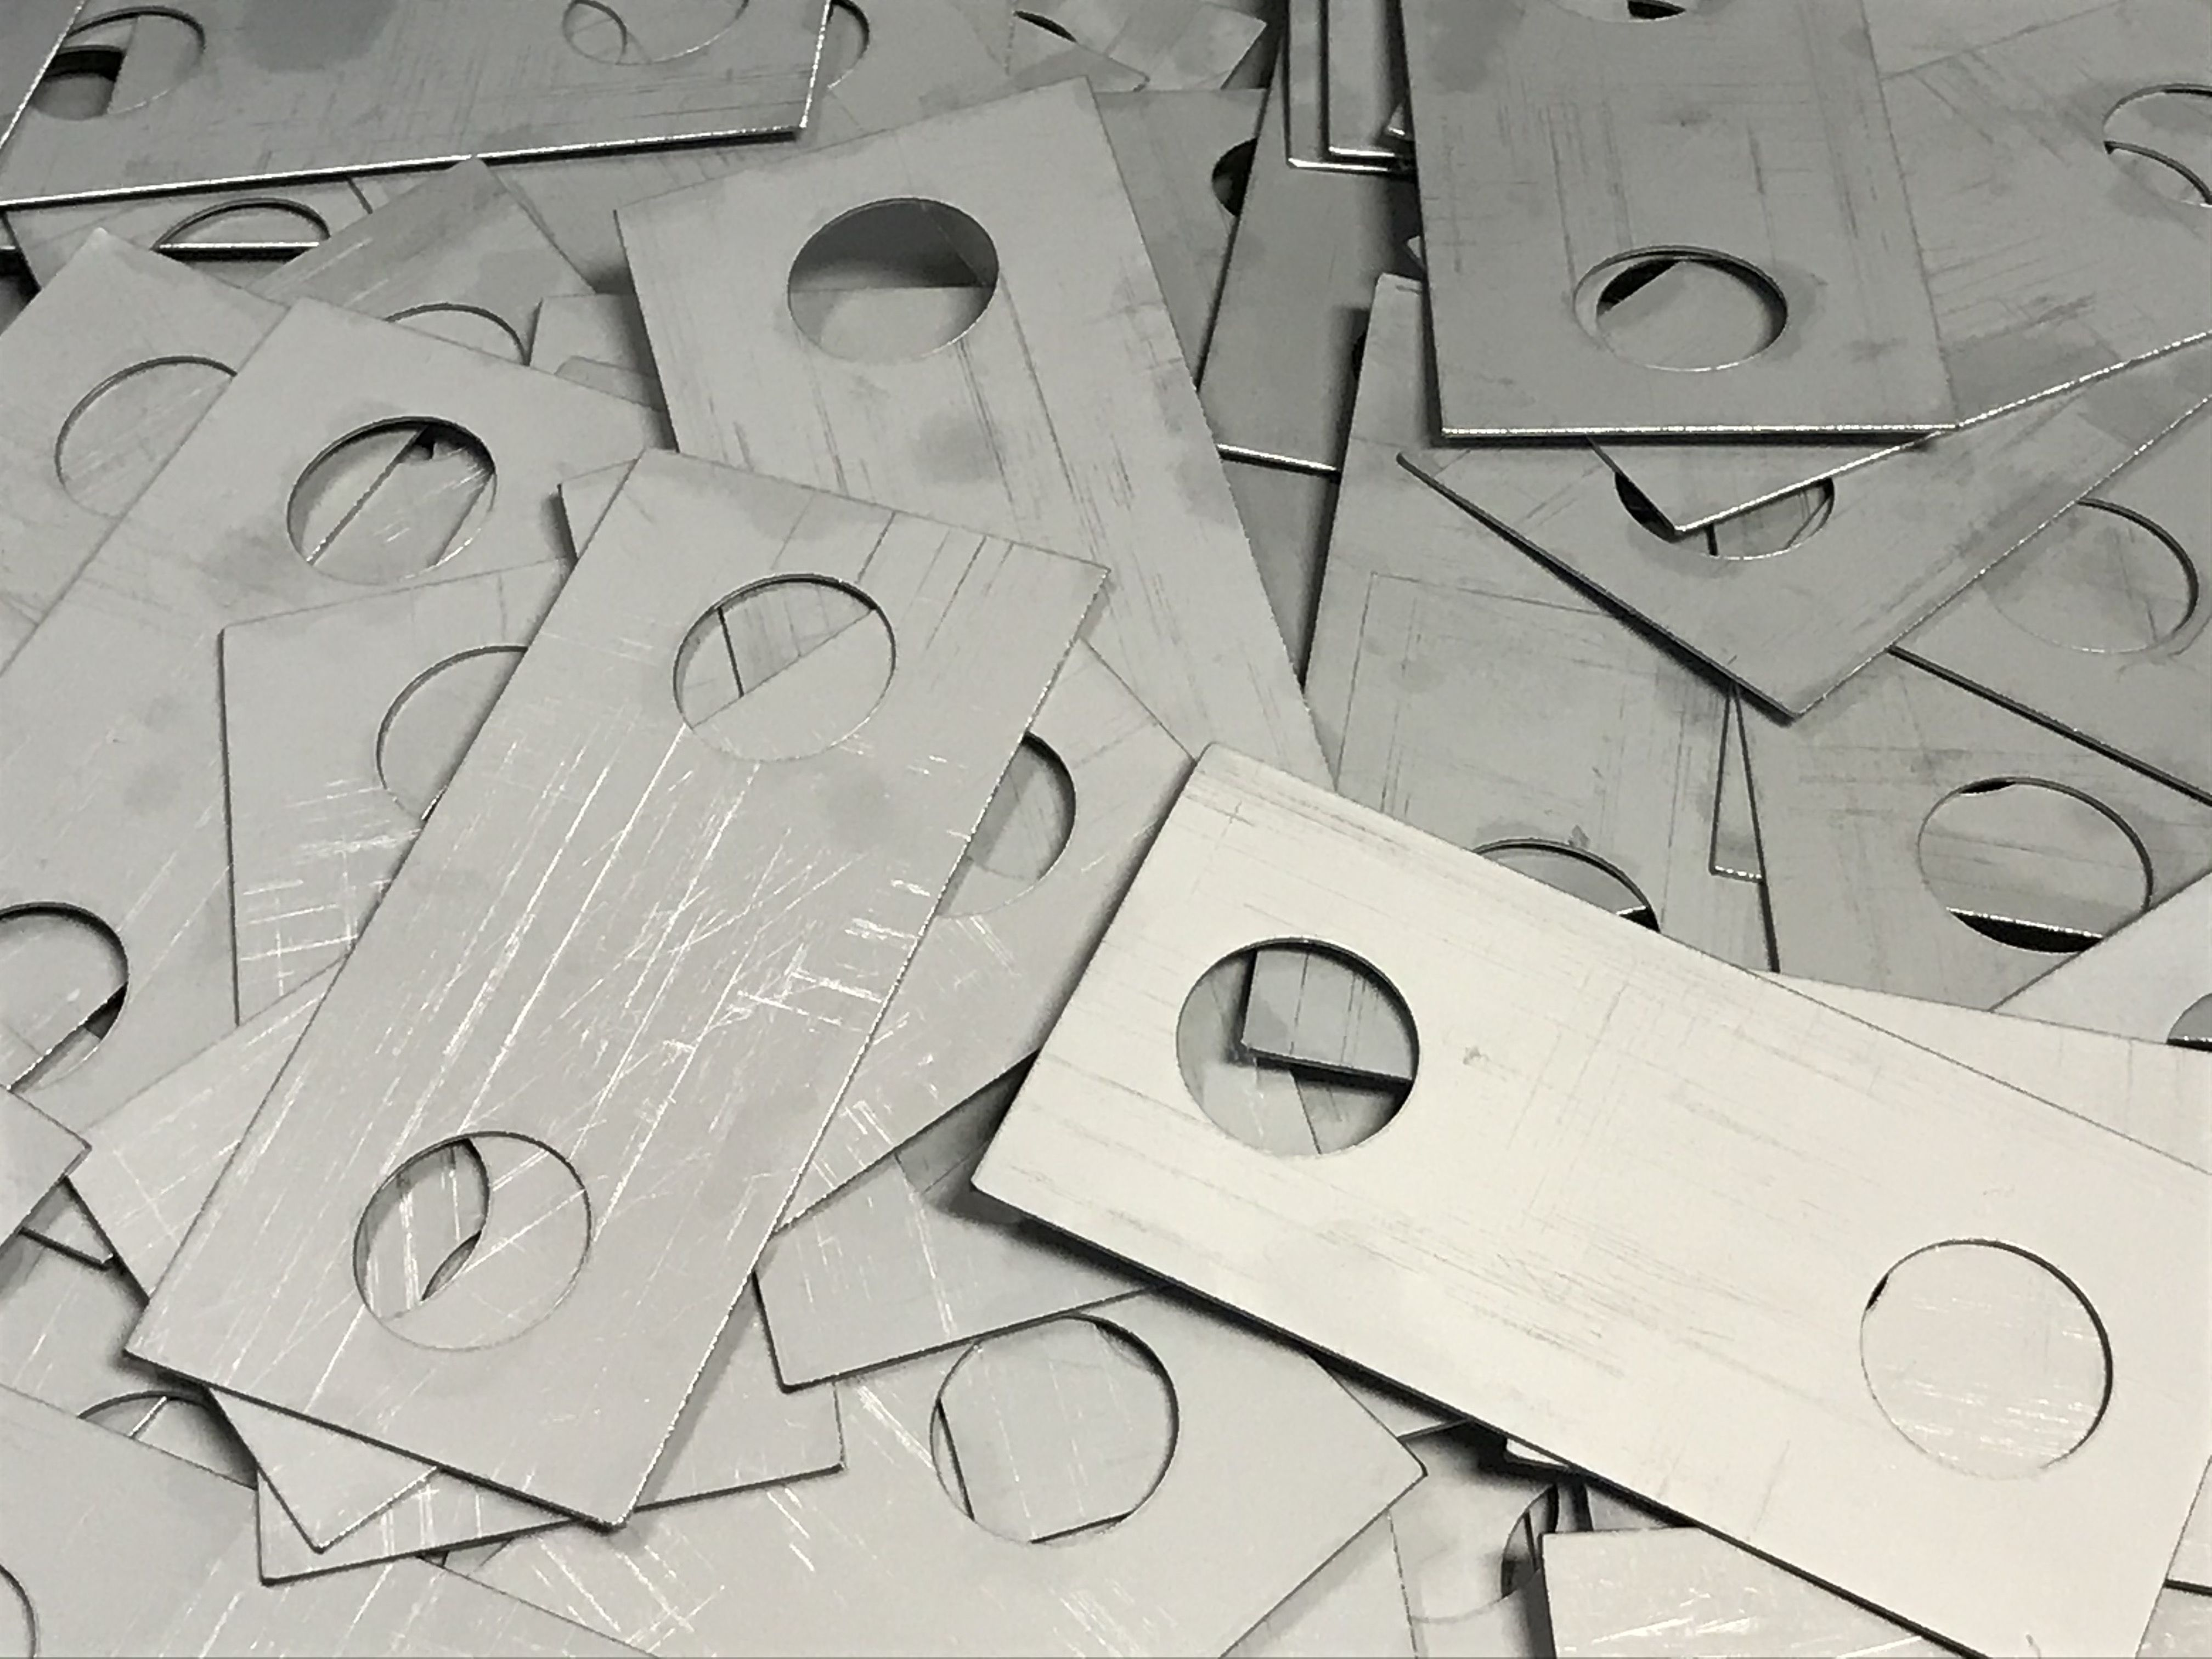 Sheet metal component design ideas for your next project ...